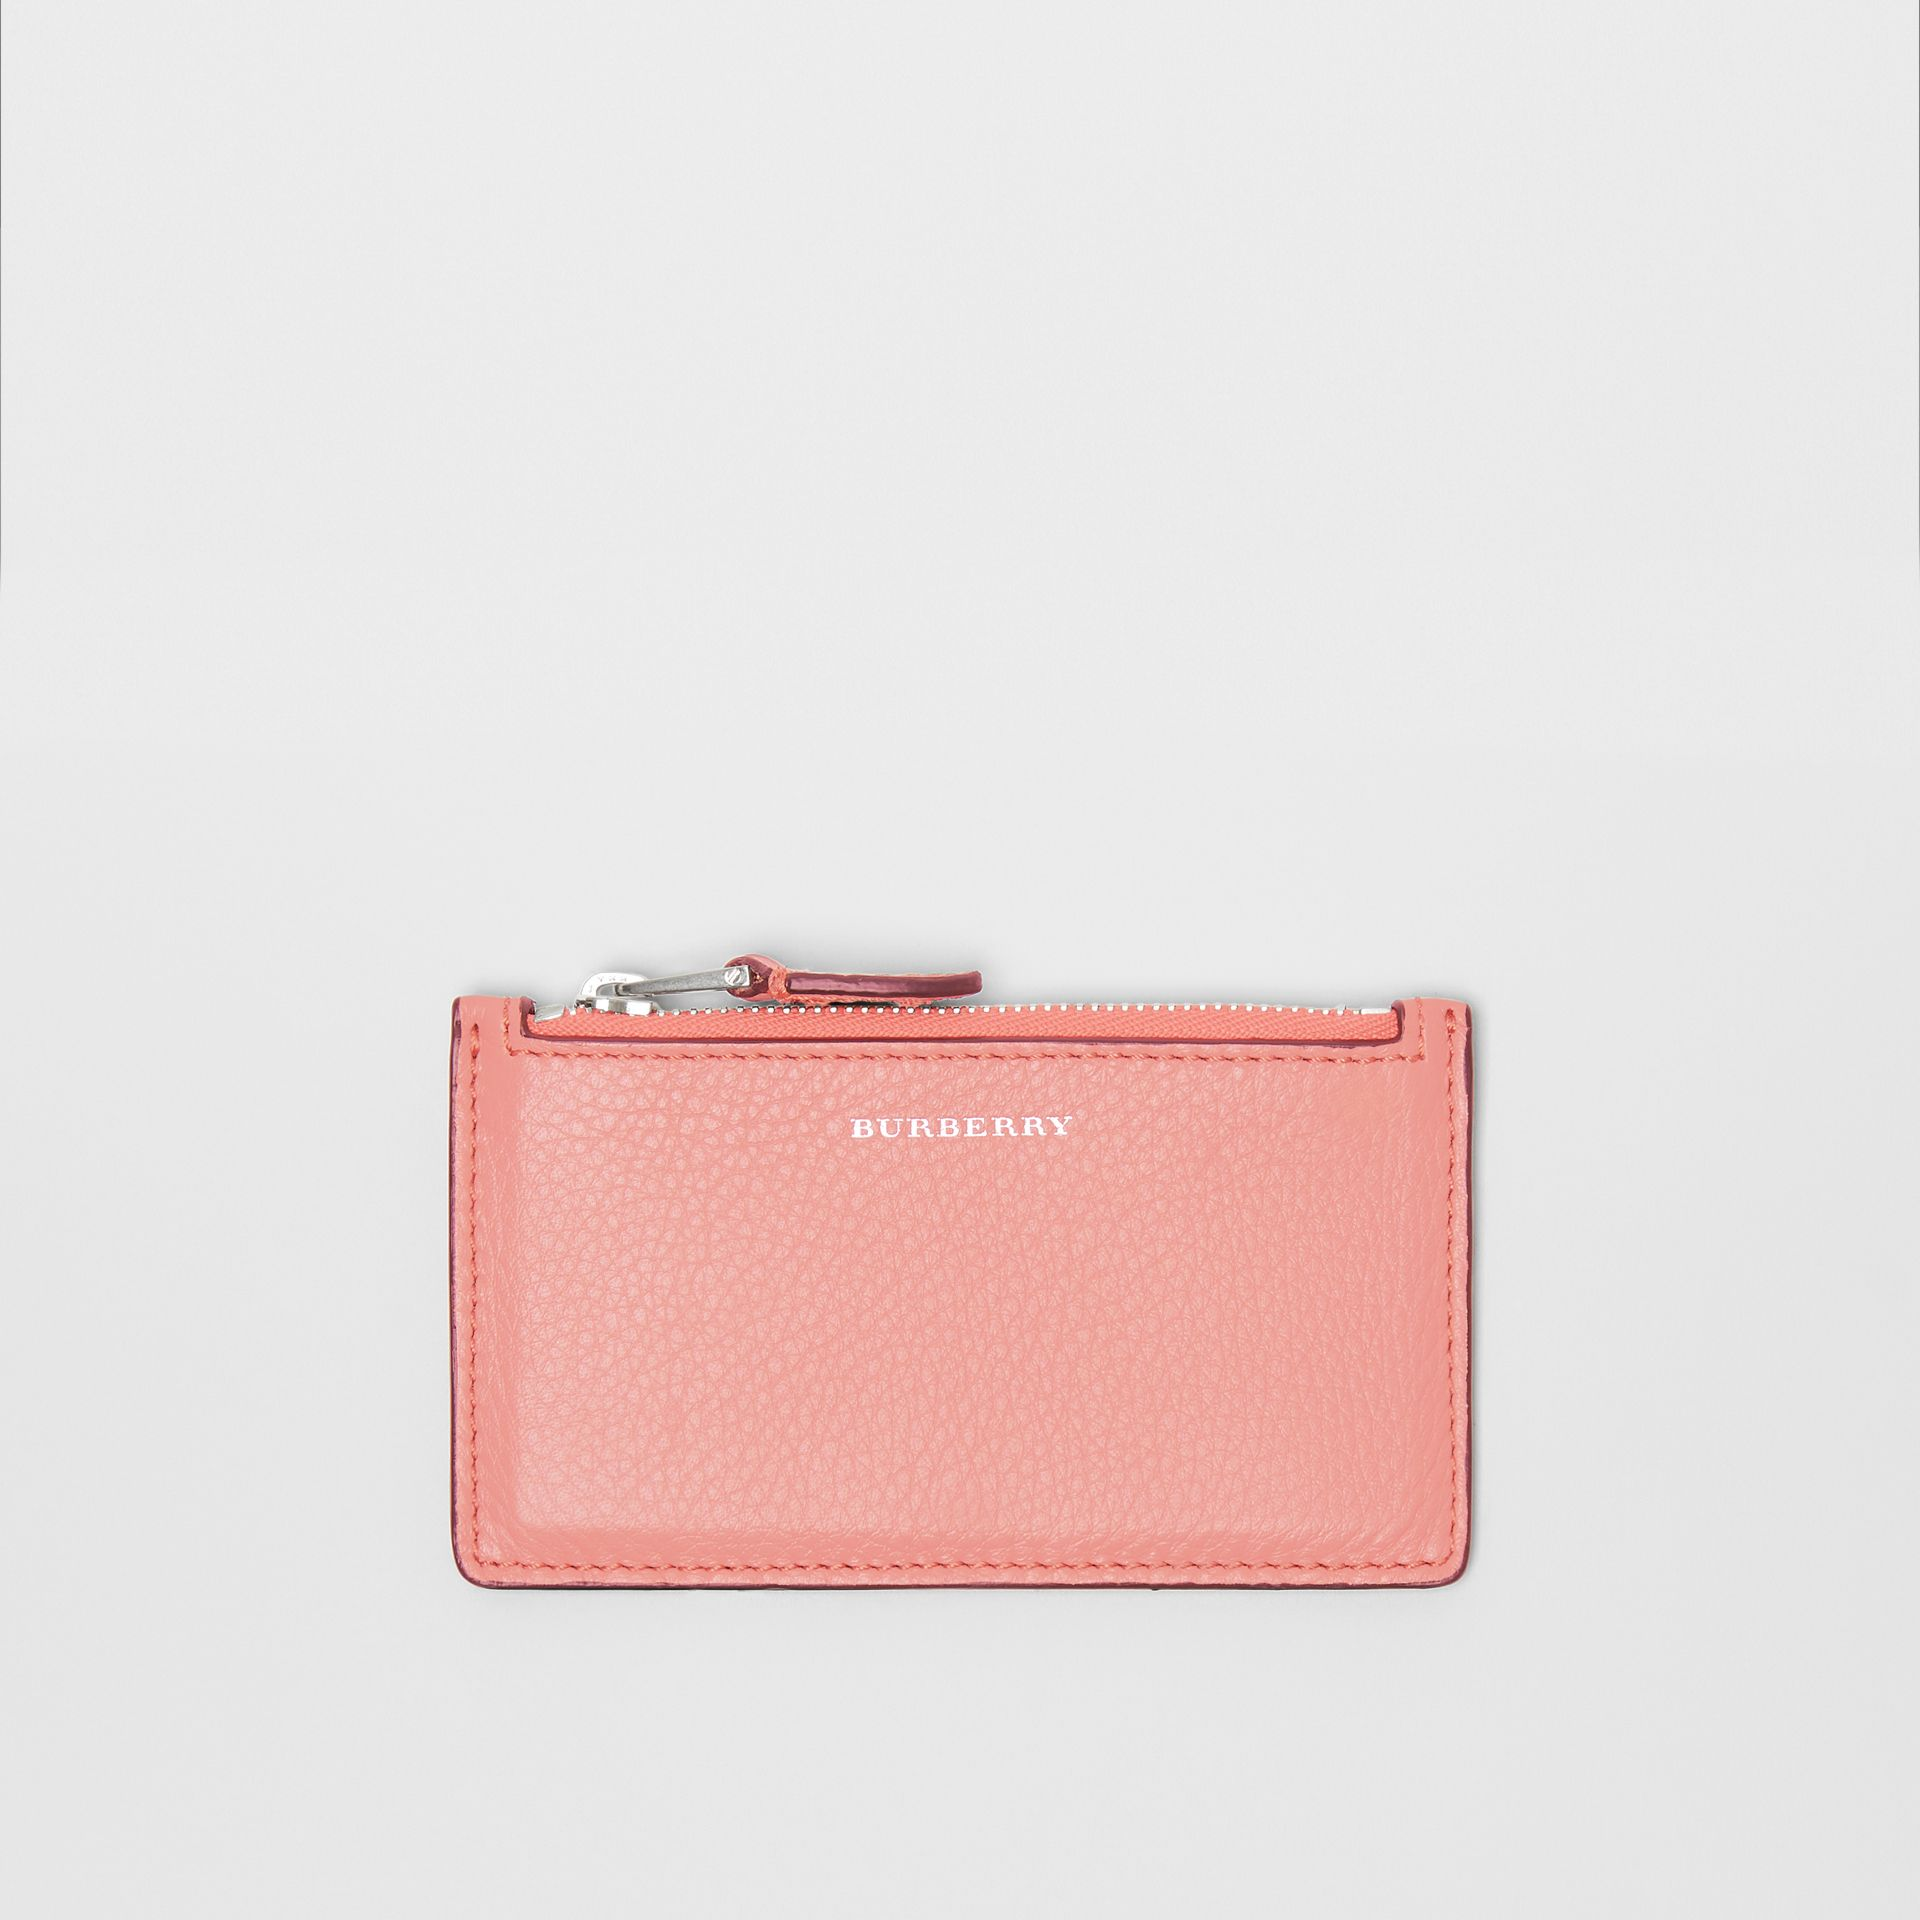 Two-tone Leather Zip Card Case in Dusty Rose - Women | Burberry - gallery image 0